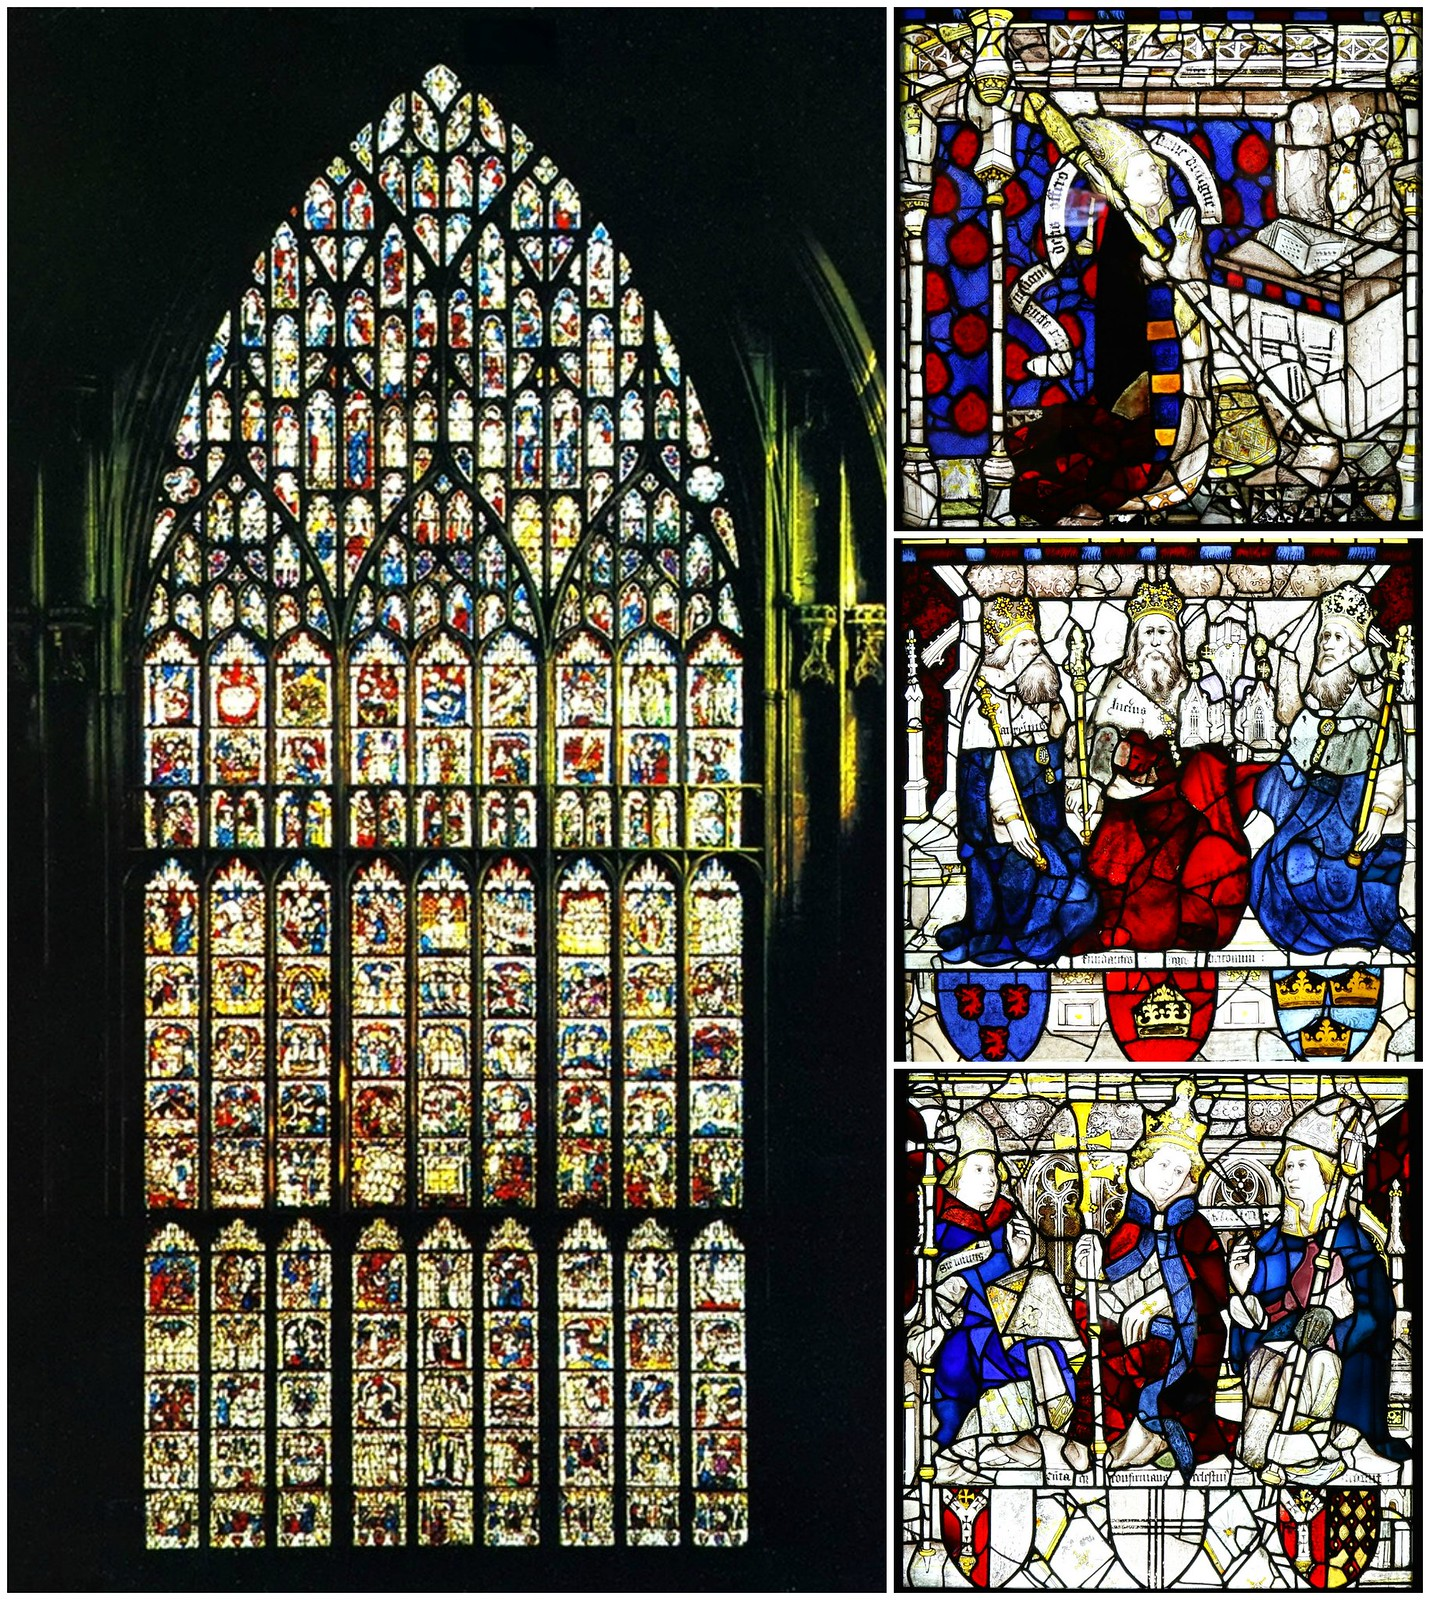 The Great East Window. Credit striderv, Andrewrabbott, flickr